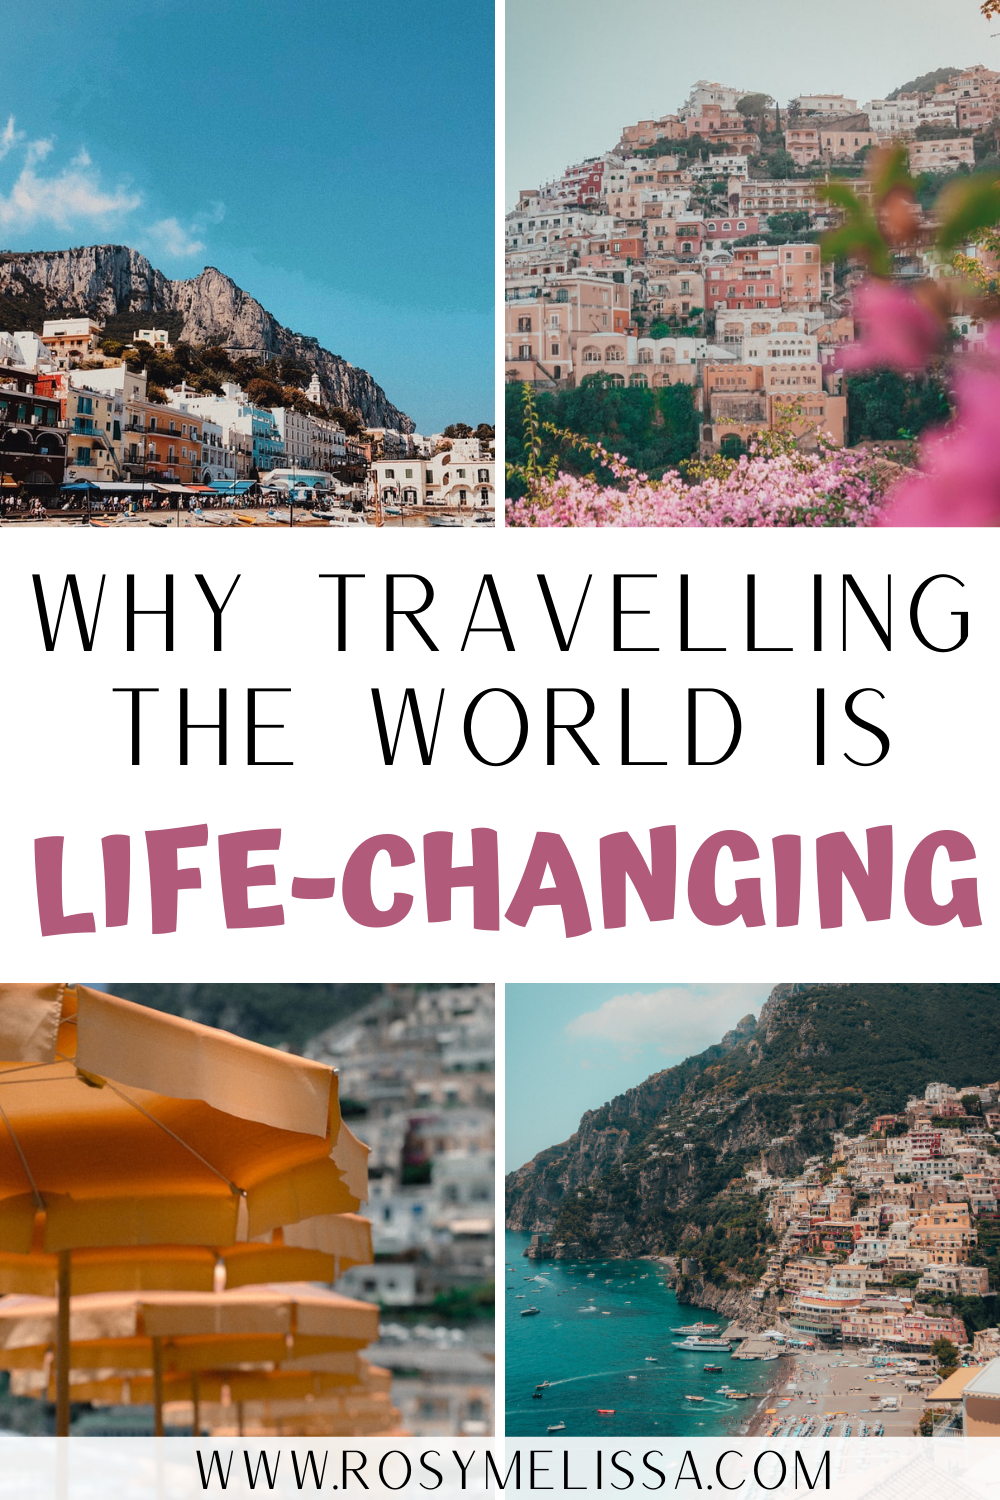 why travelling the world is life changing and reasons to travel the world